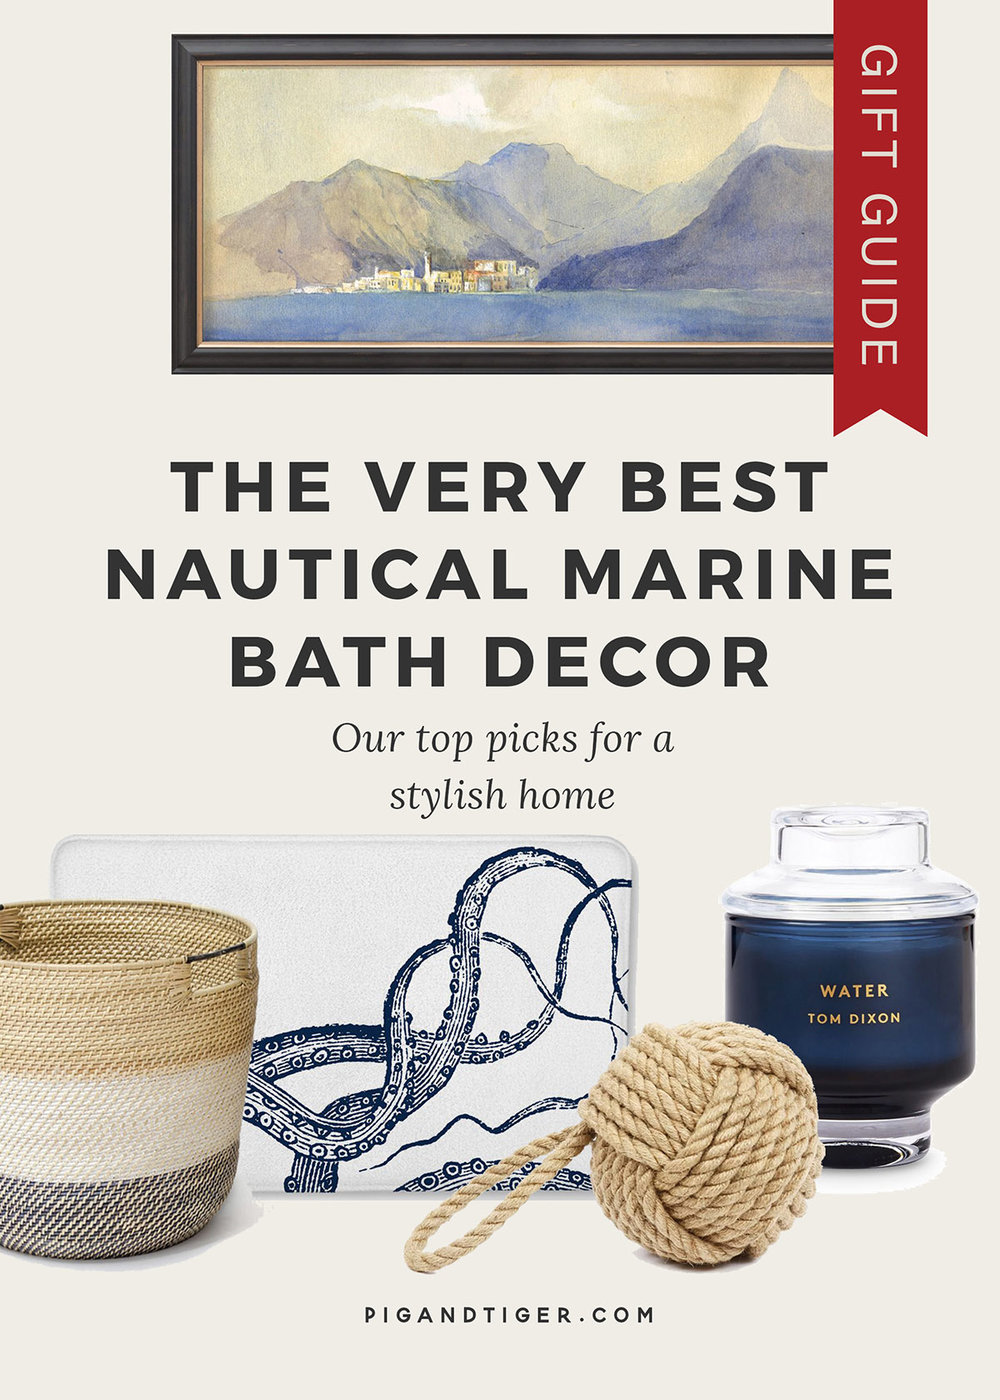 The best nautical bath decor gift guide - CLICK FOR DETAILS